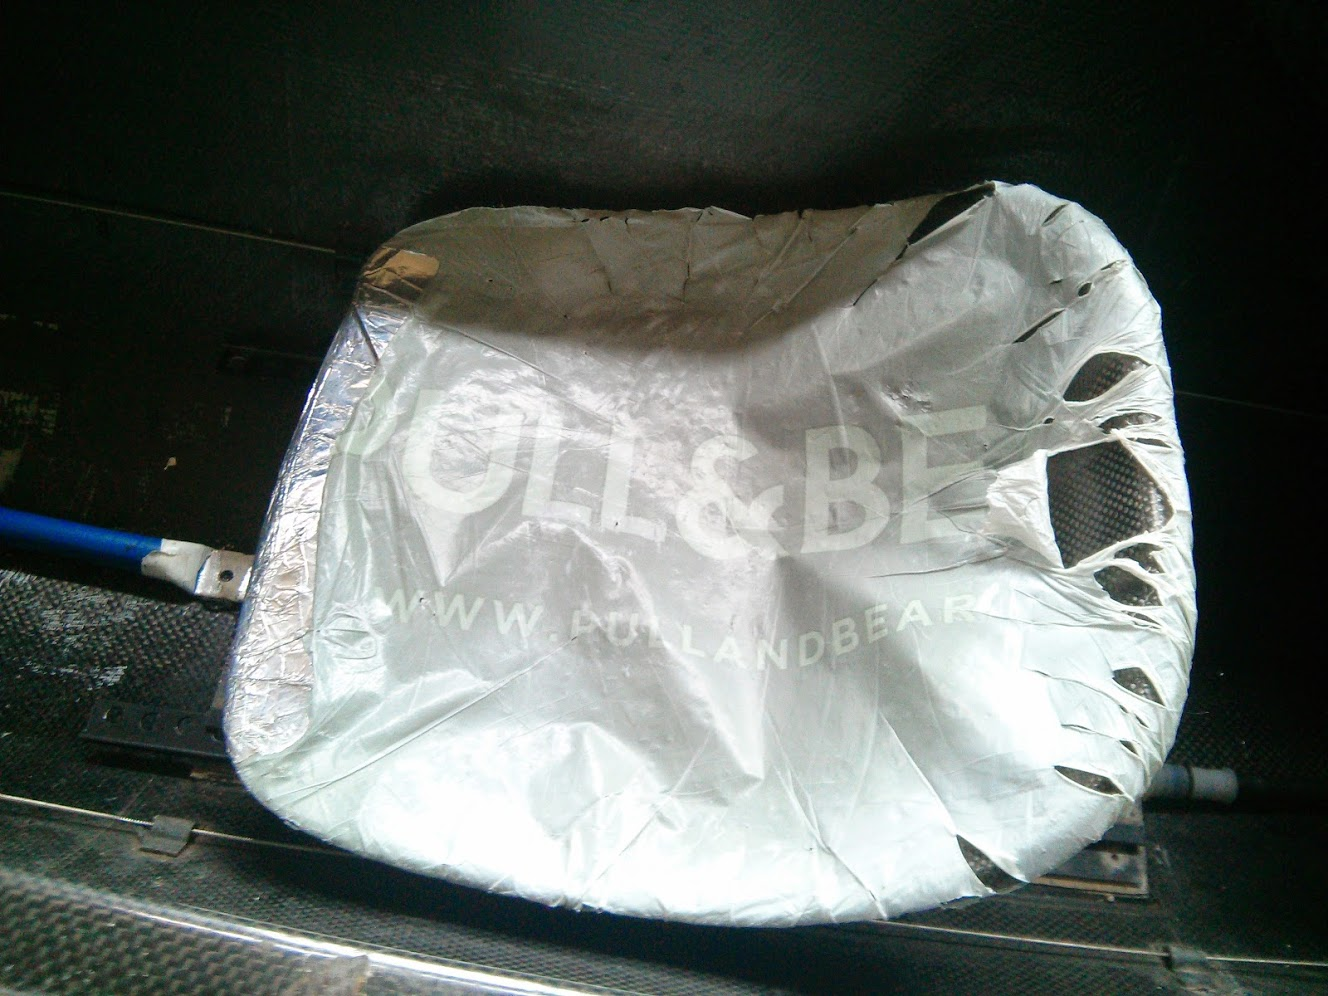 Plastic bag over the seat